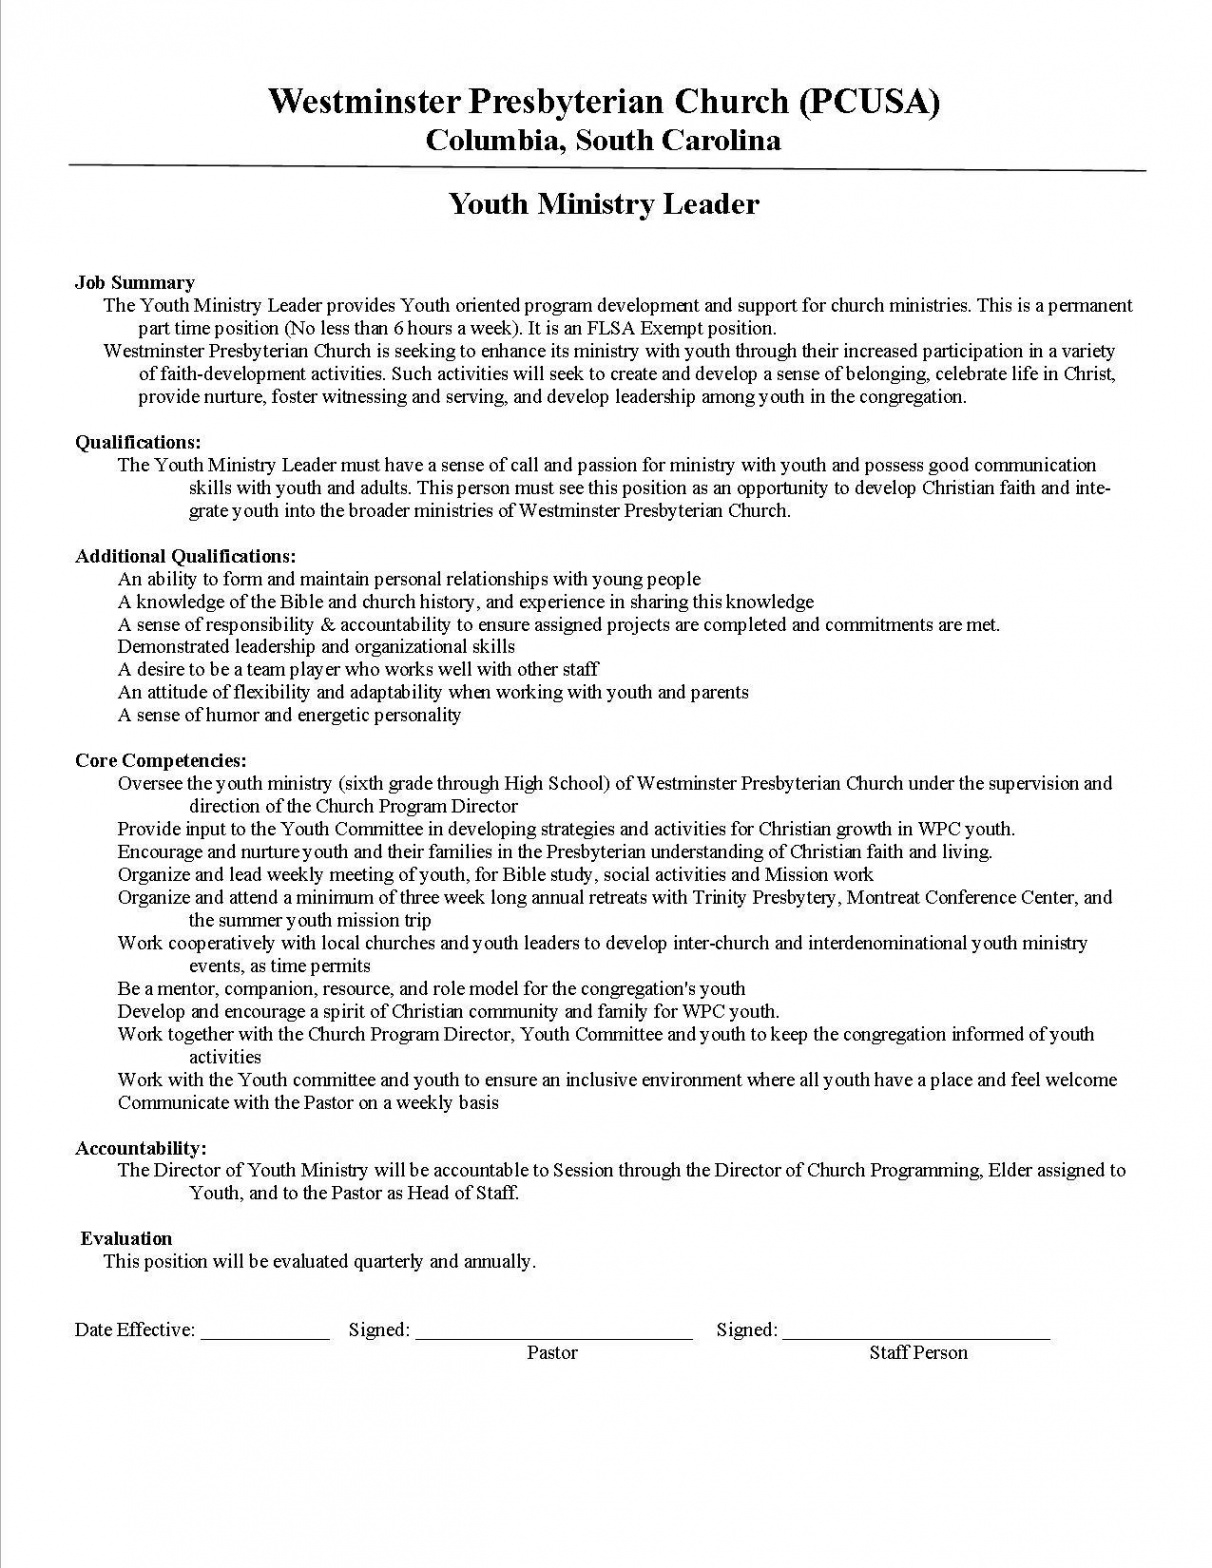 Free Resume Templates For Youth Resume Examples